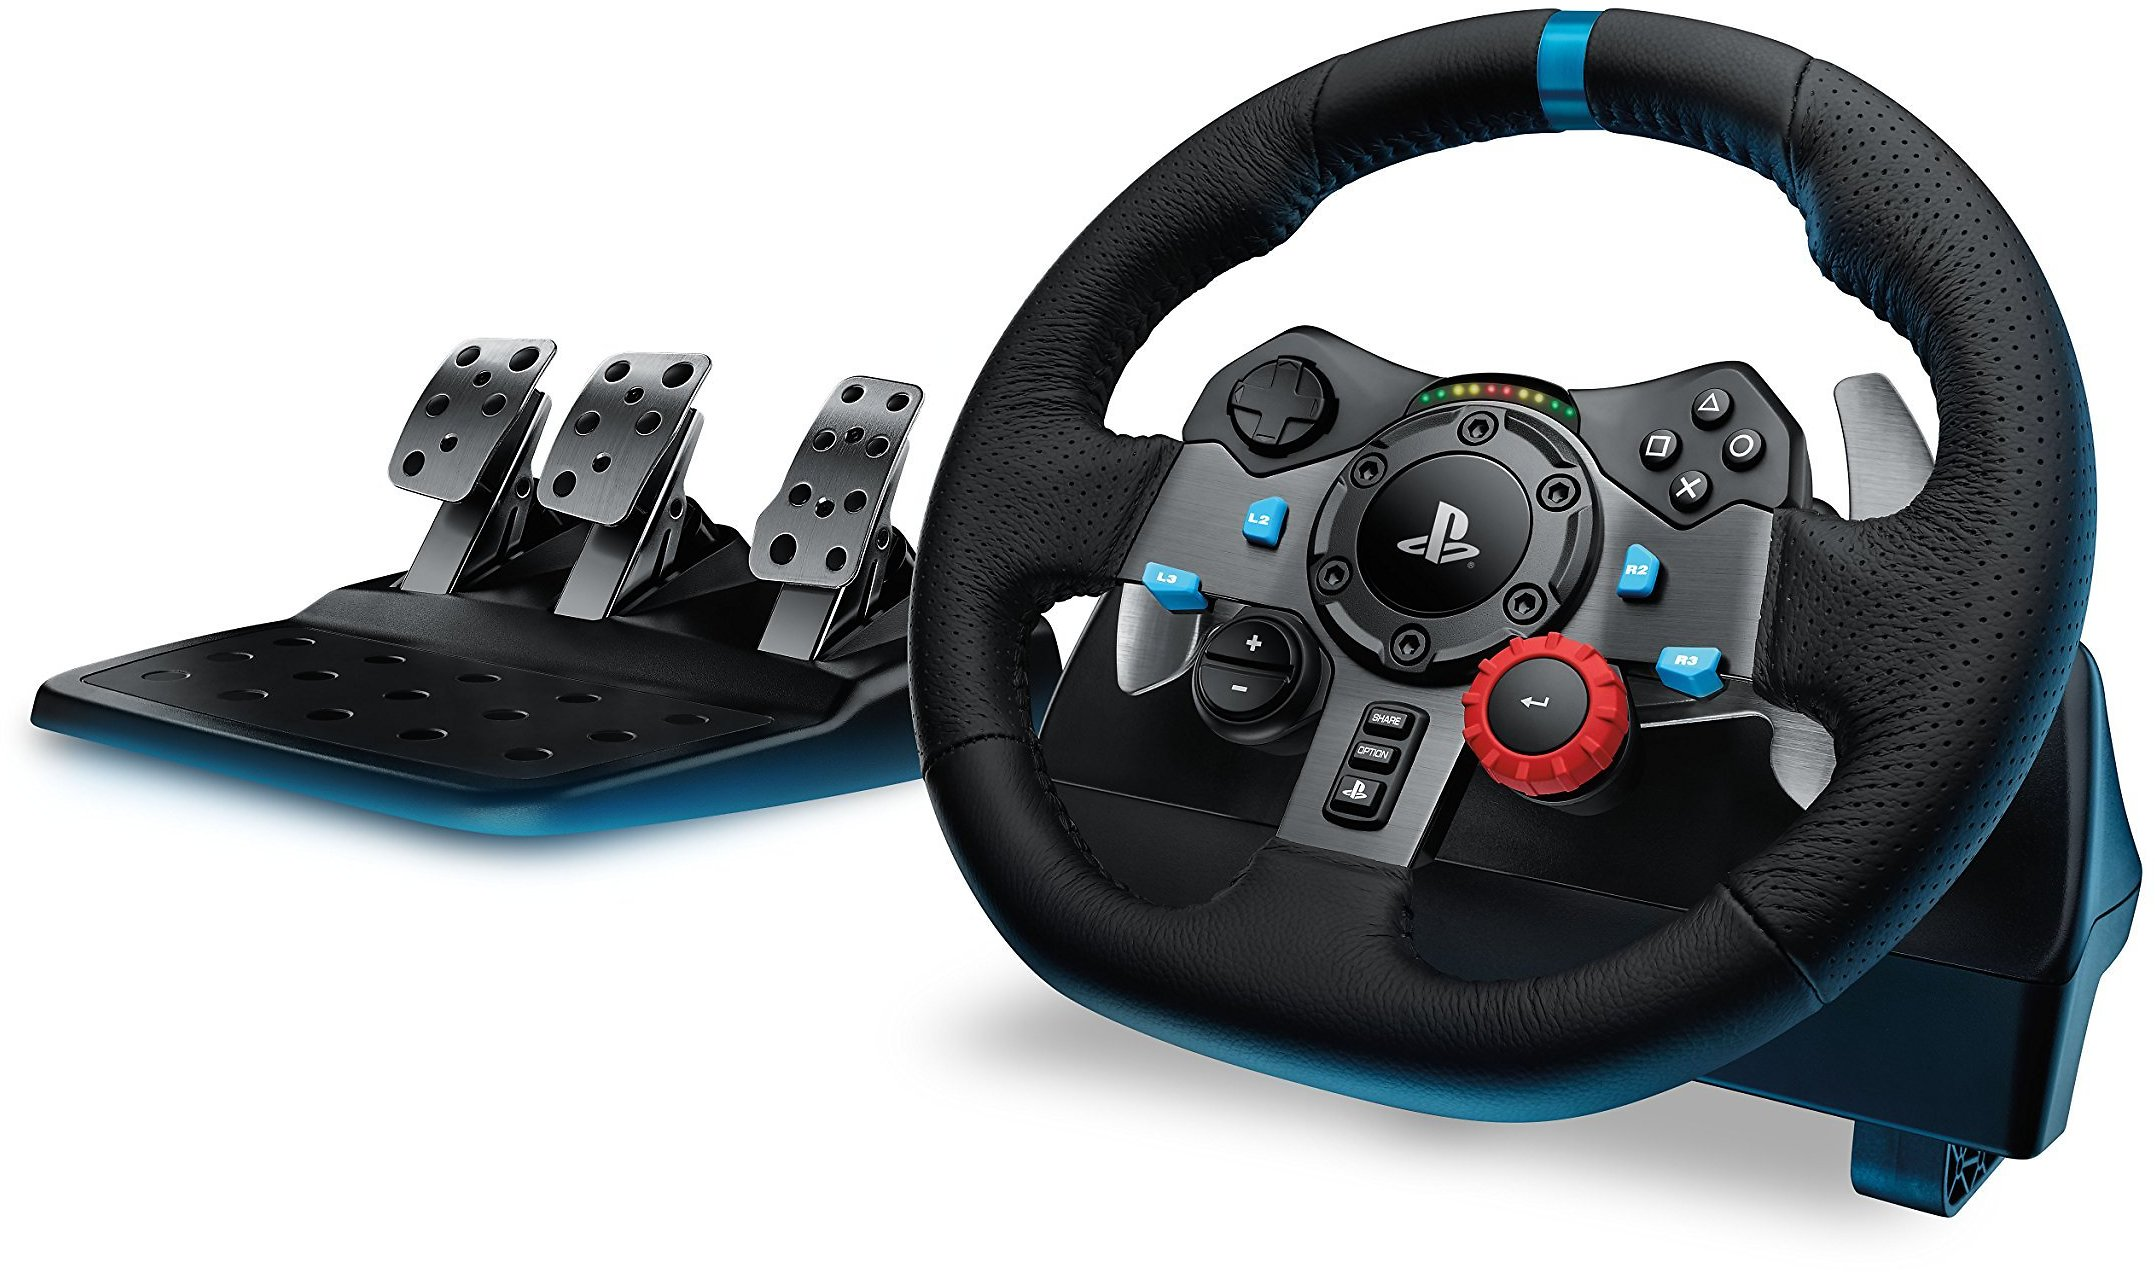 Logitech Dual-Motor Feedback Driving Force G29 Gaming Racing Wheel with Responsive Pedals for PlayStation 5, PlayStation 4